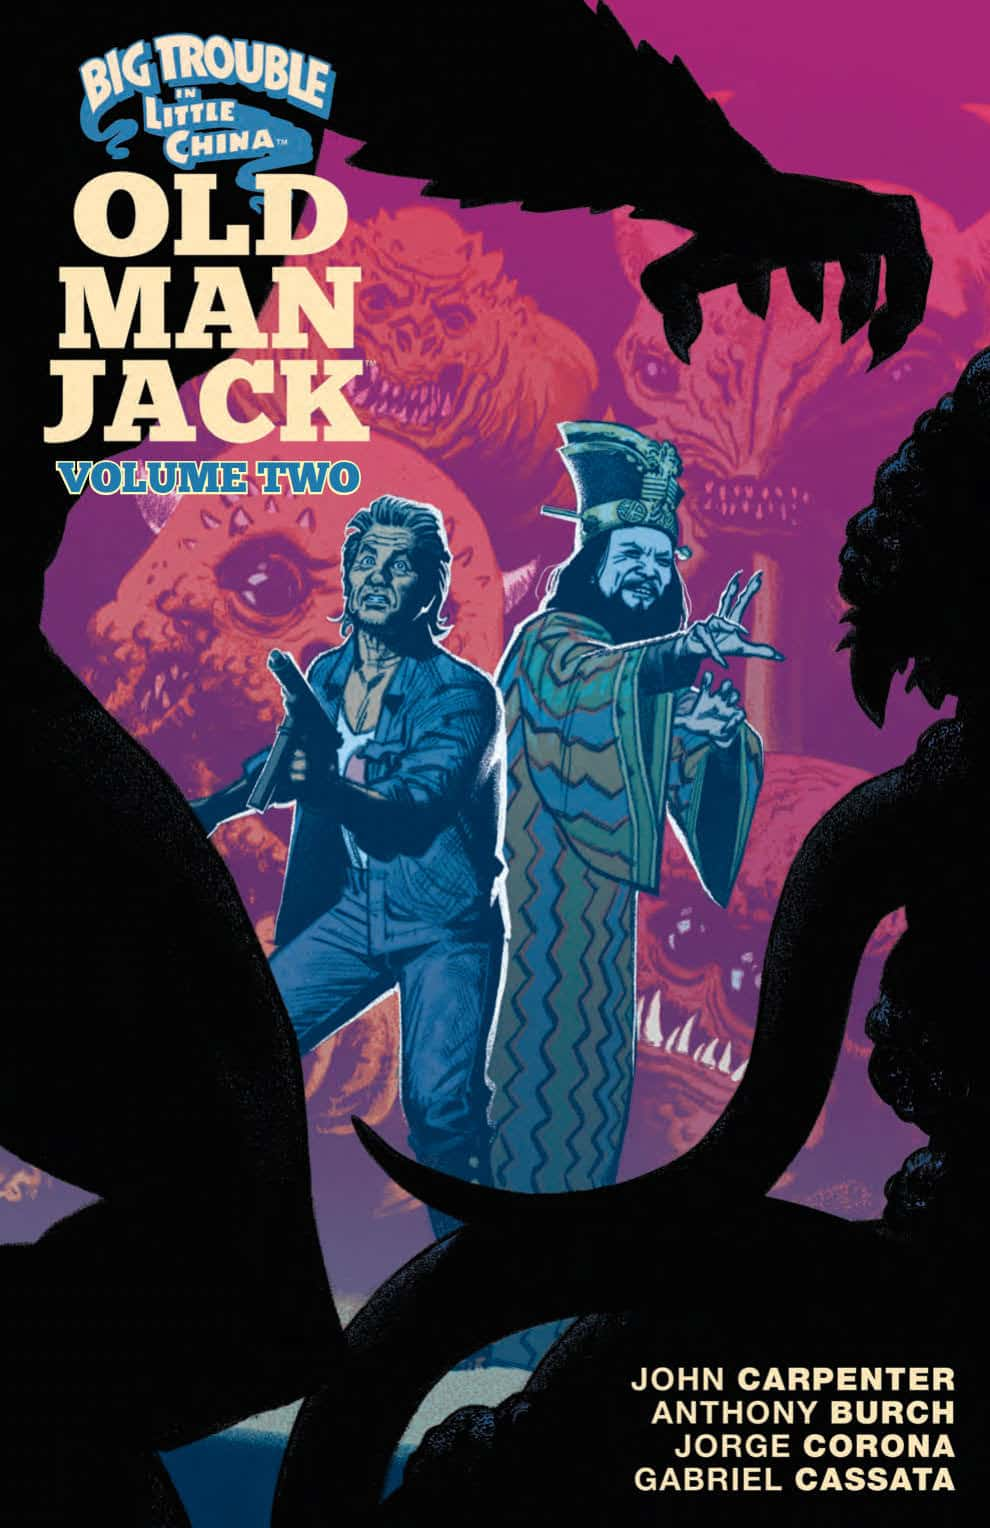 Big Trouble In Little China: Old Man Jack Vol. 2 SC